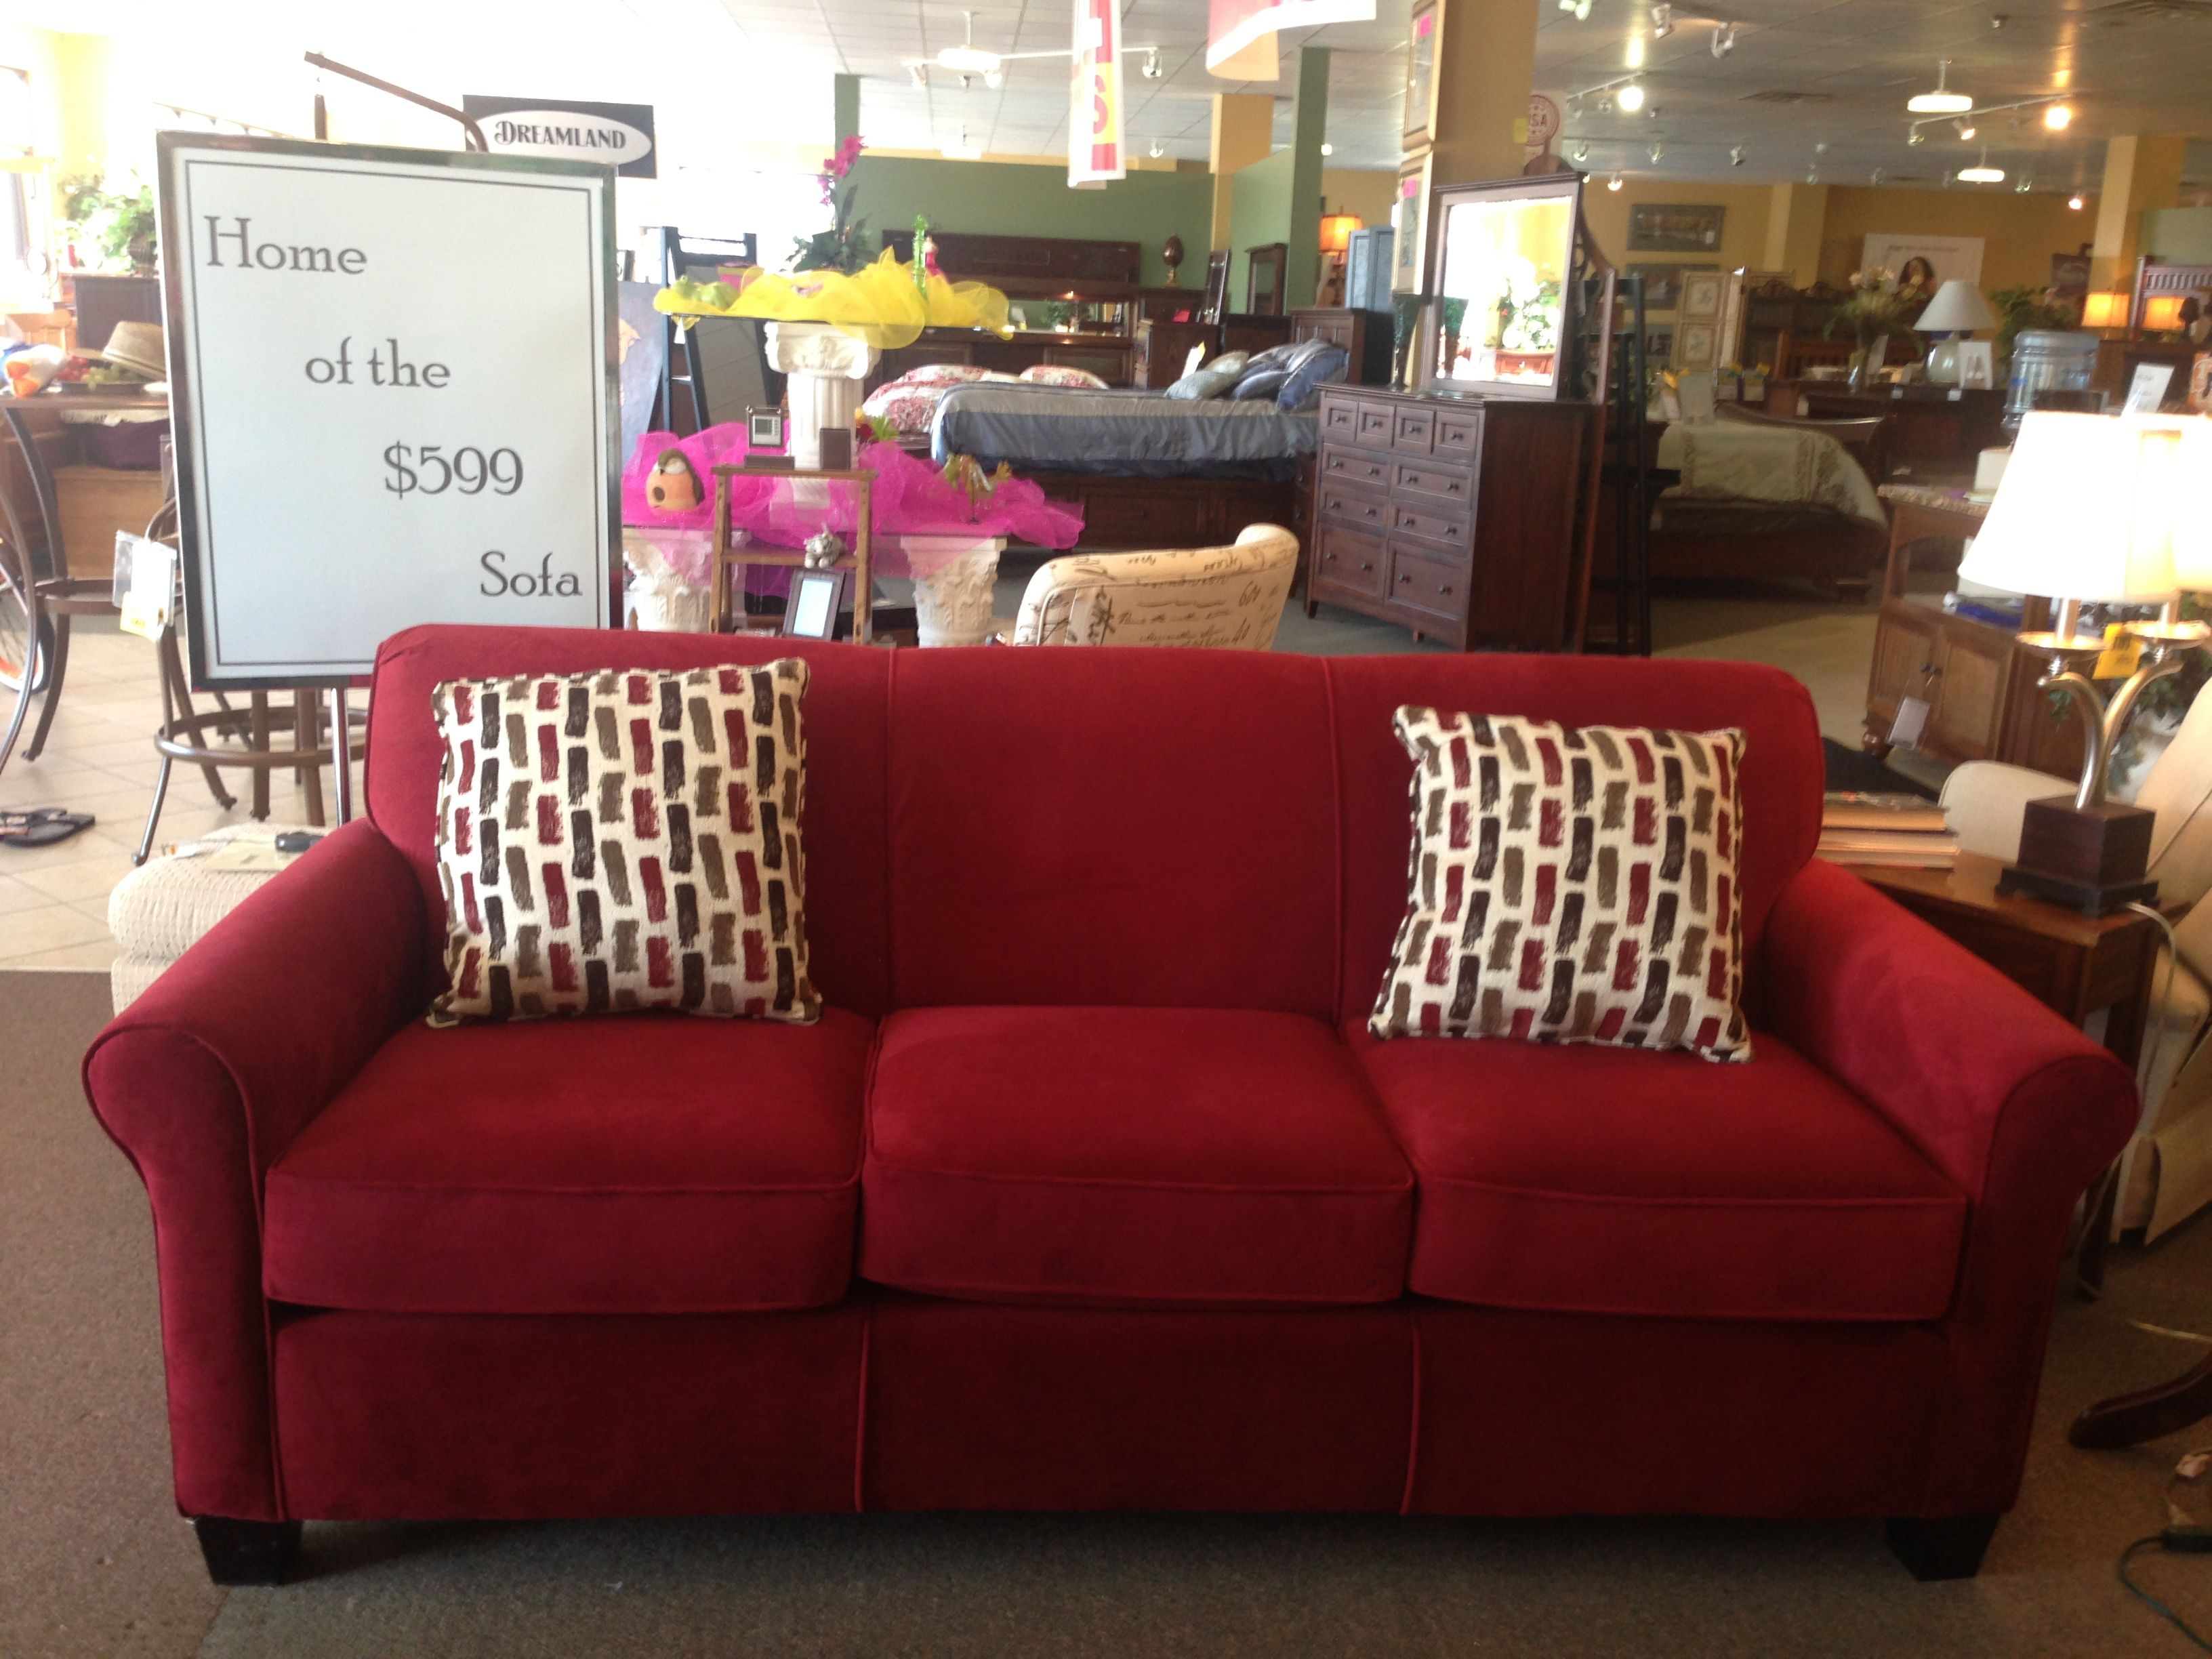 Special One Of Four 599 Sofas In The Store Available In Other